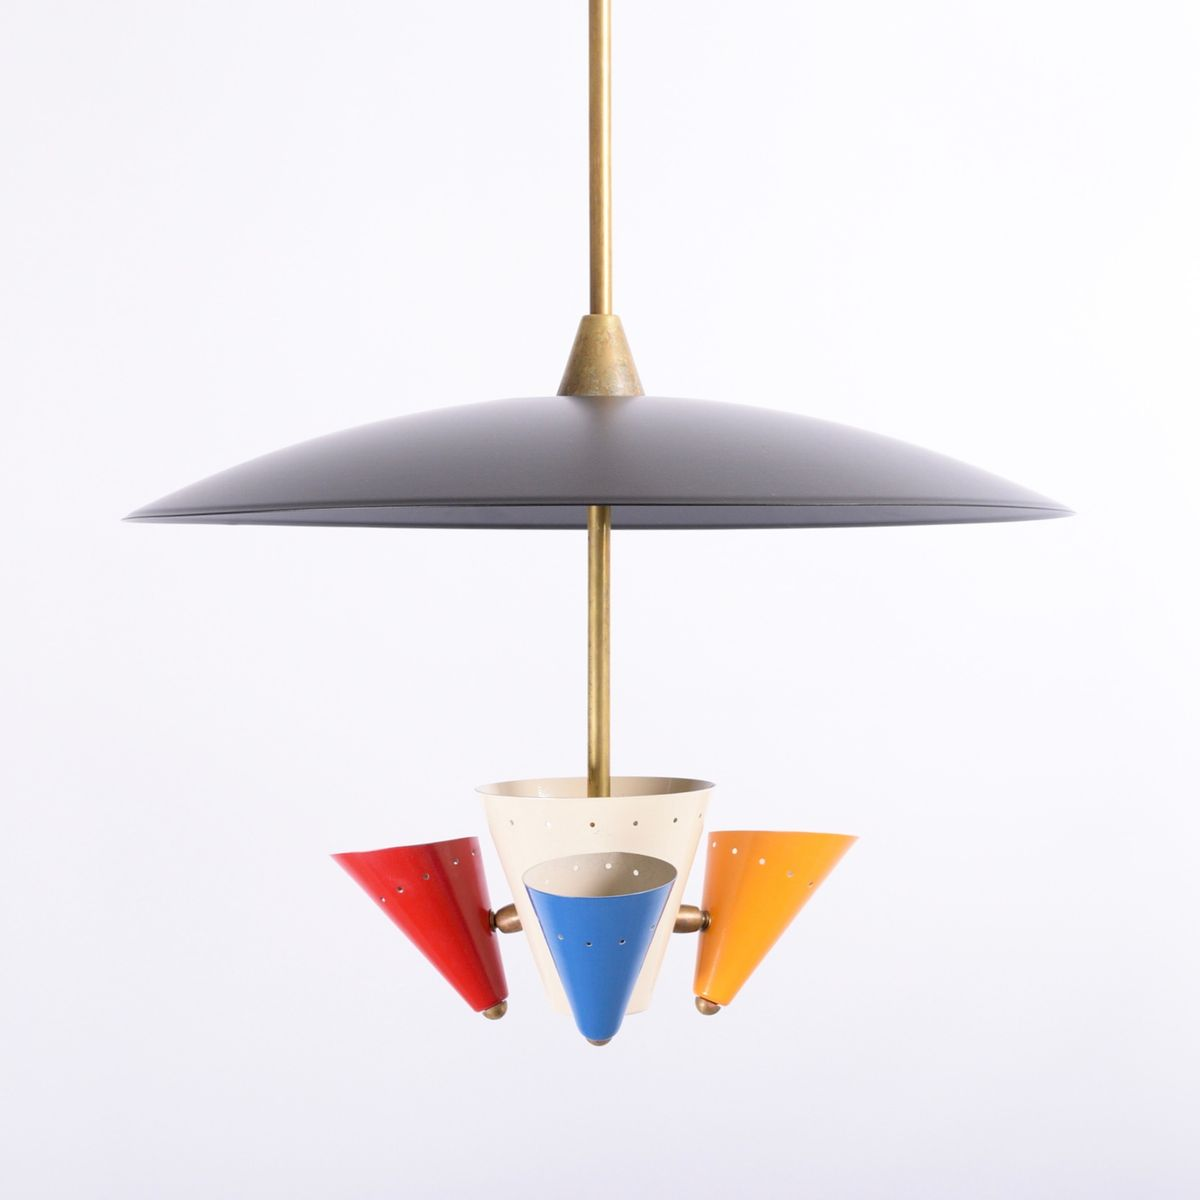 Vintage ceiling light from arredoluce for sale at pamono for Arredo luce